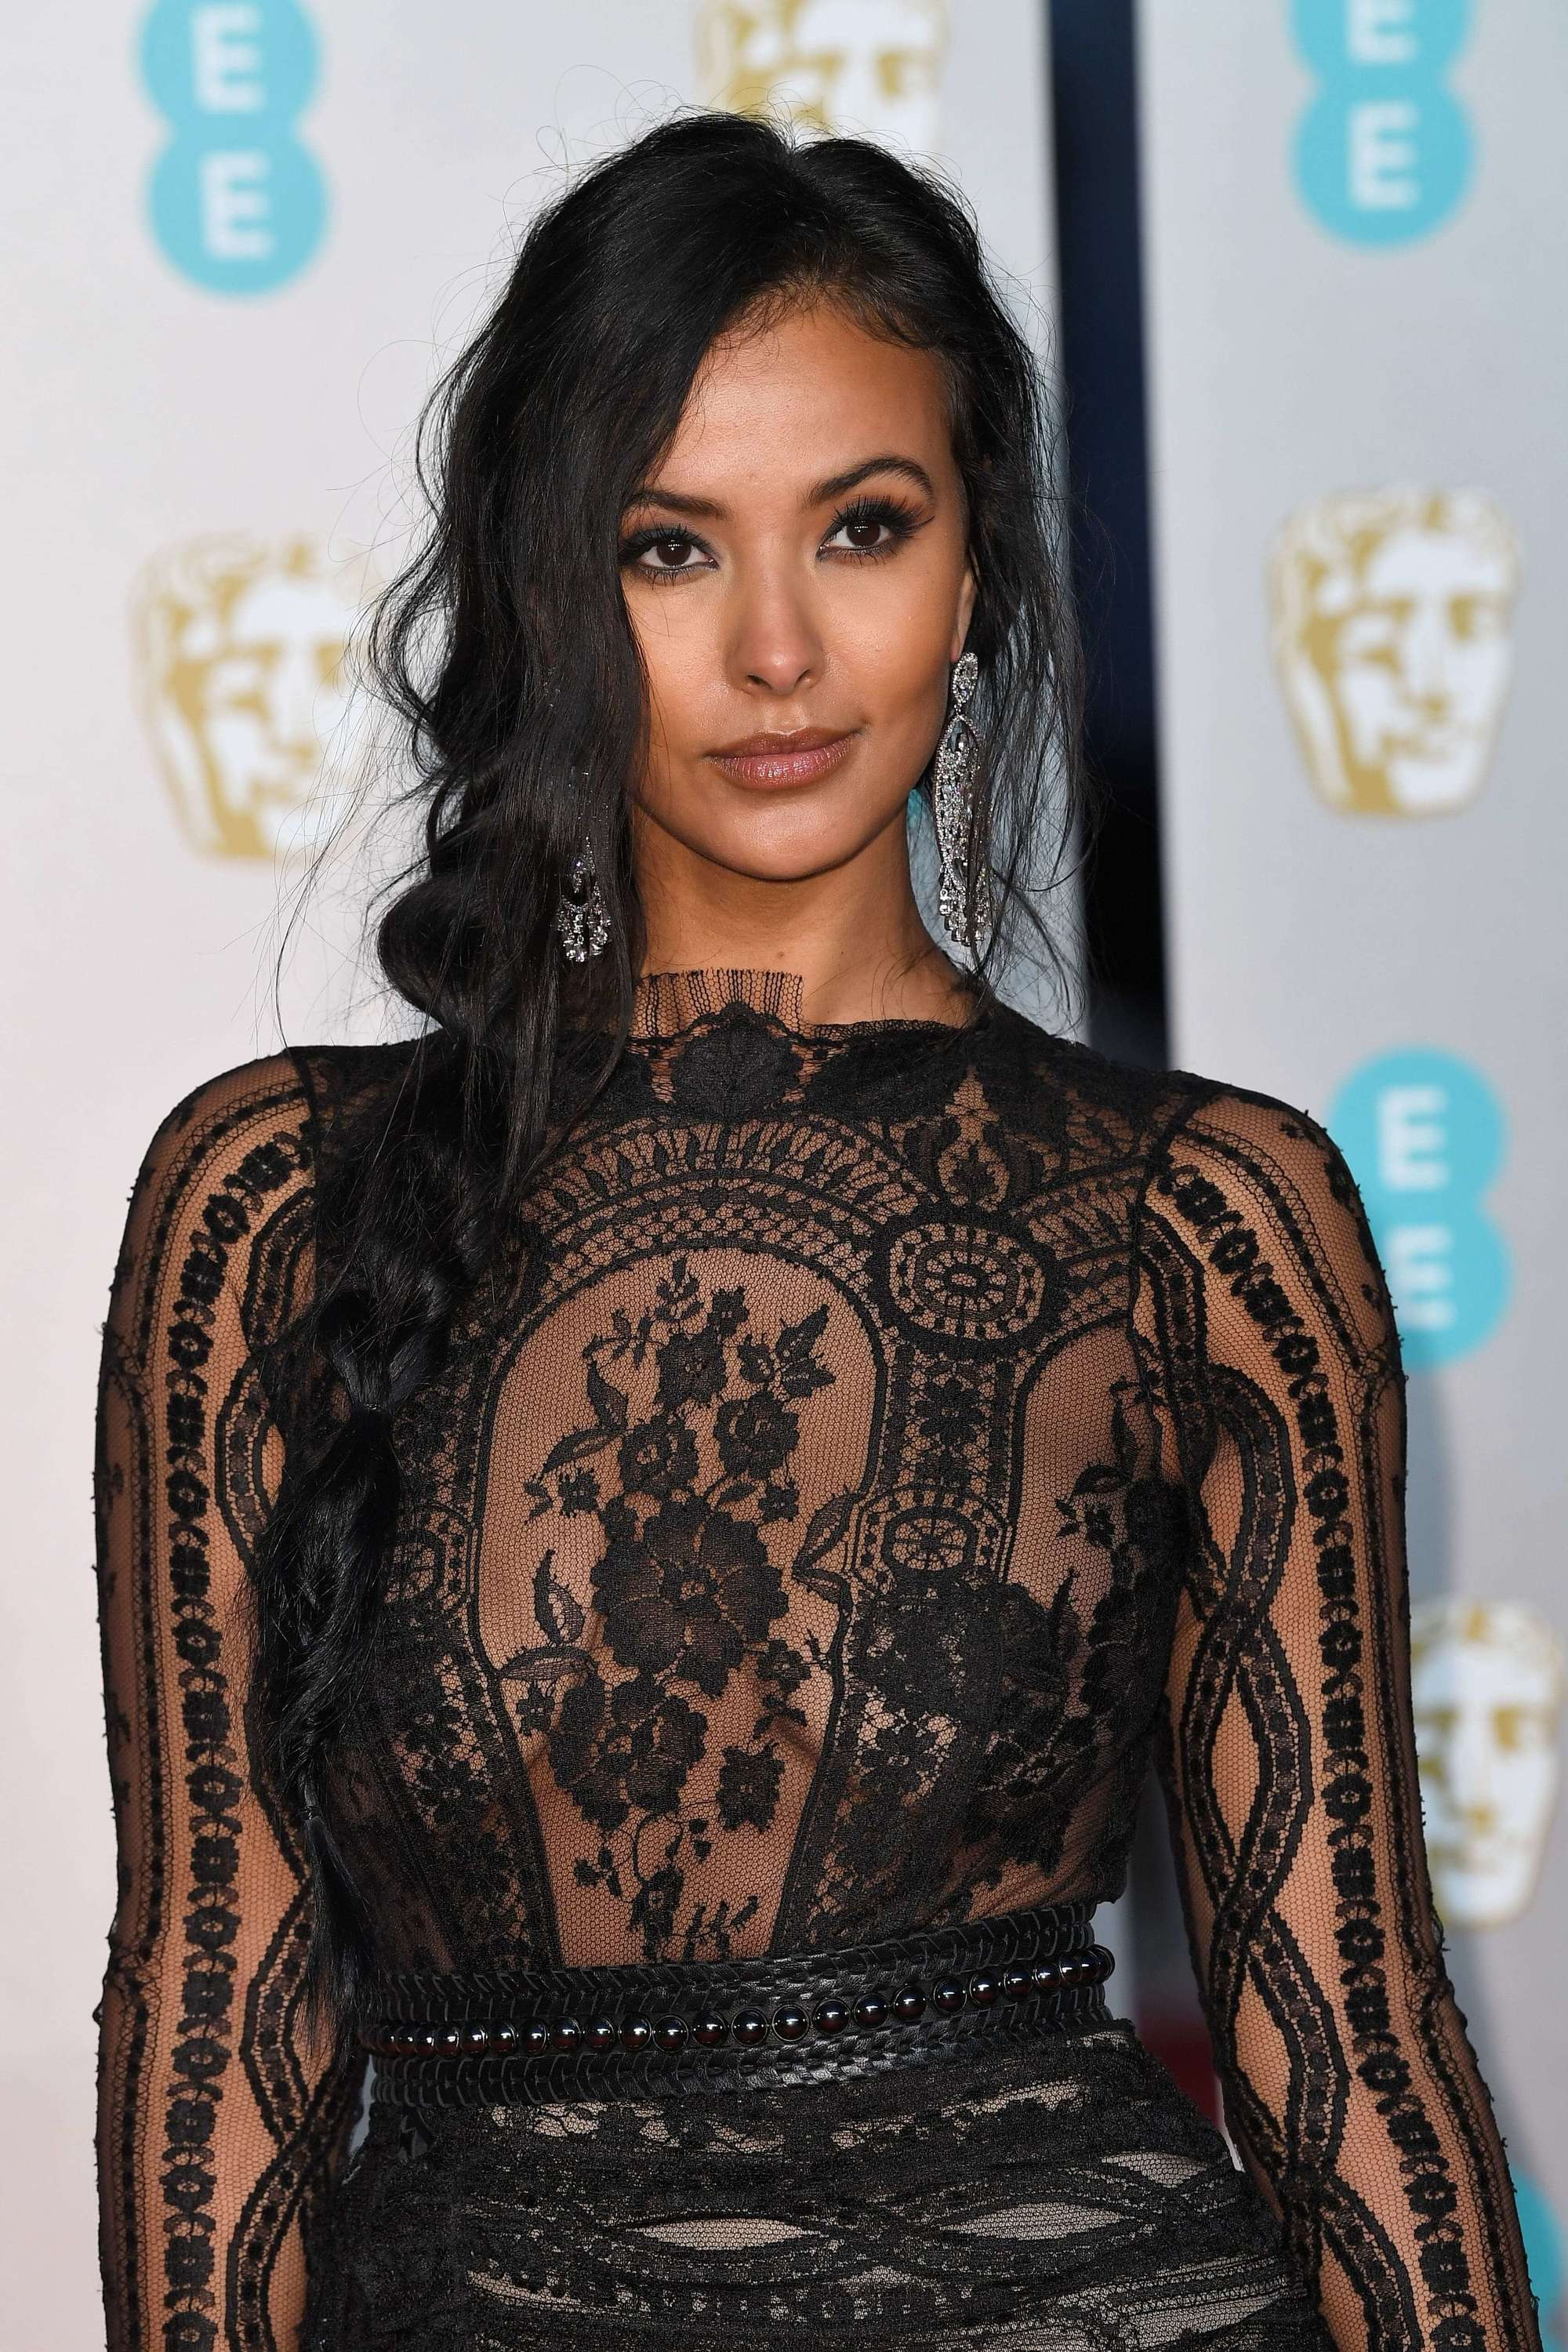 BAFTAs hairstyles: Maya Jama with long wavy dark brown hair styled in a side rope twist wearing a black sheer dress.